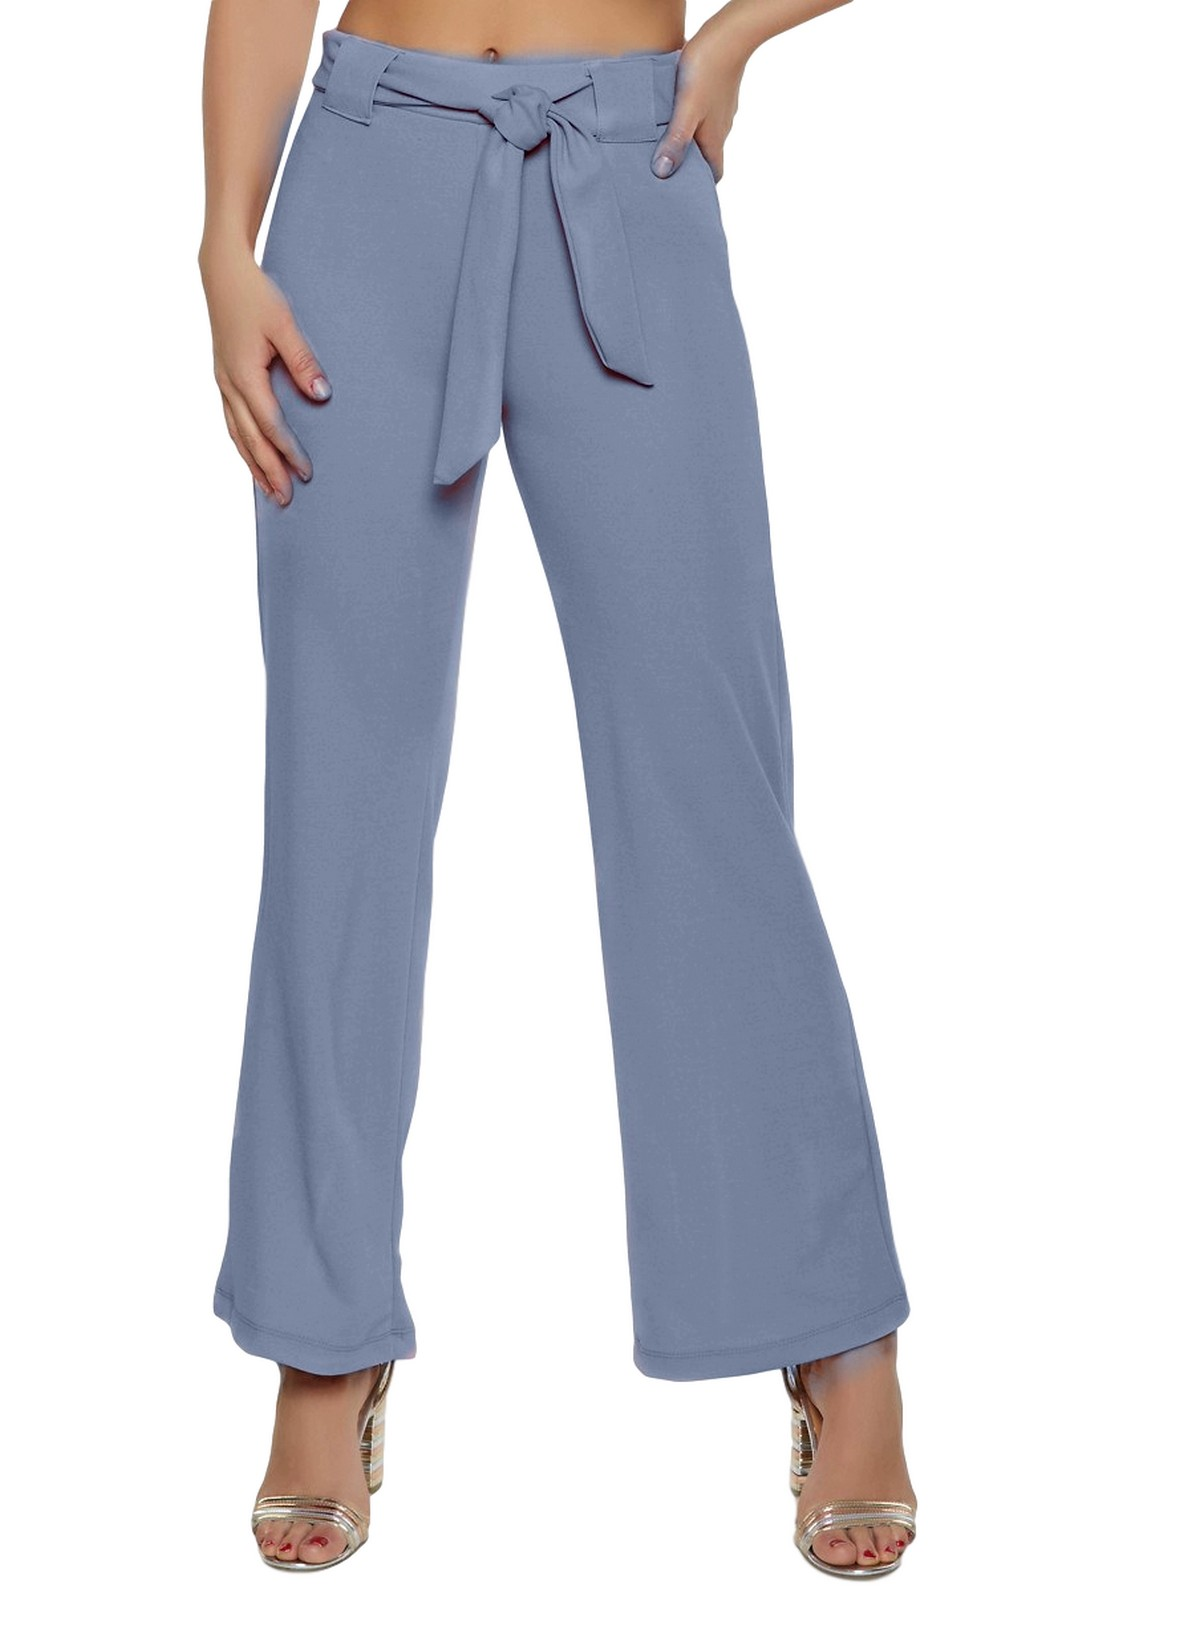 Slim Fit Culottes Trousers in Charcoal Grey